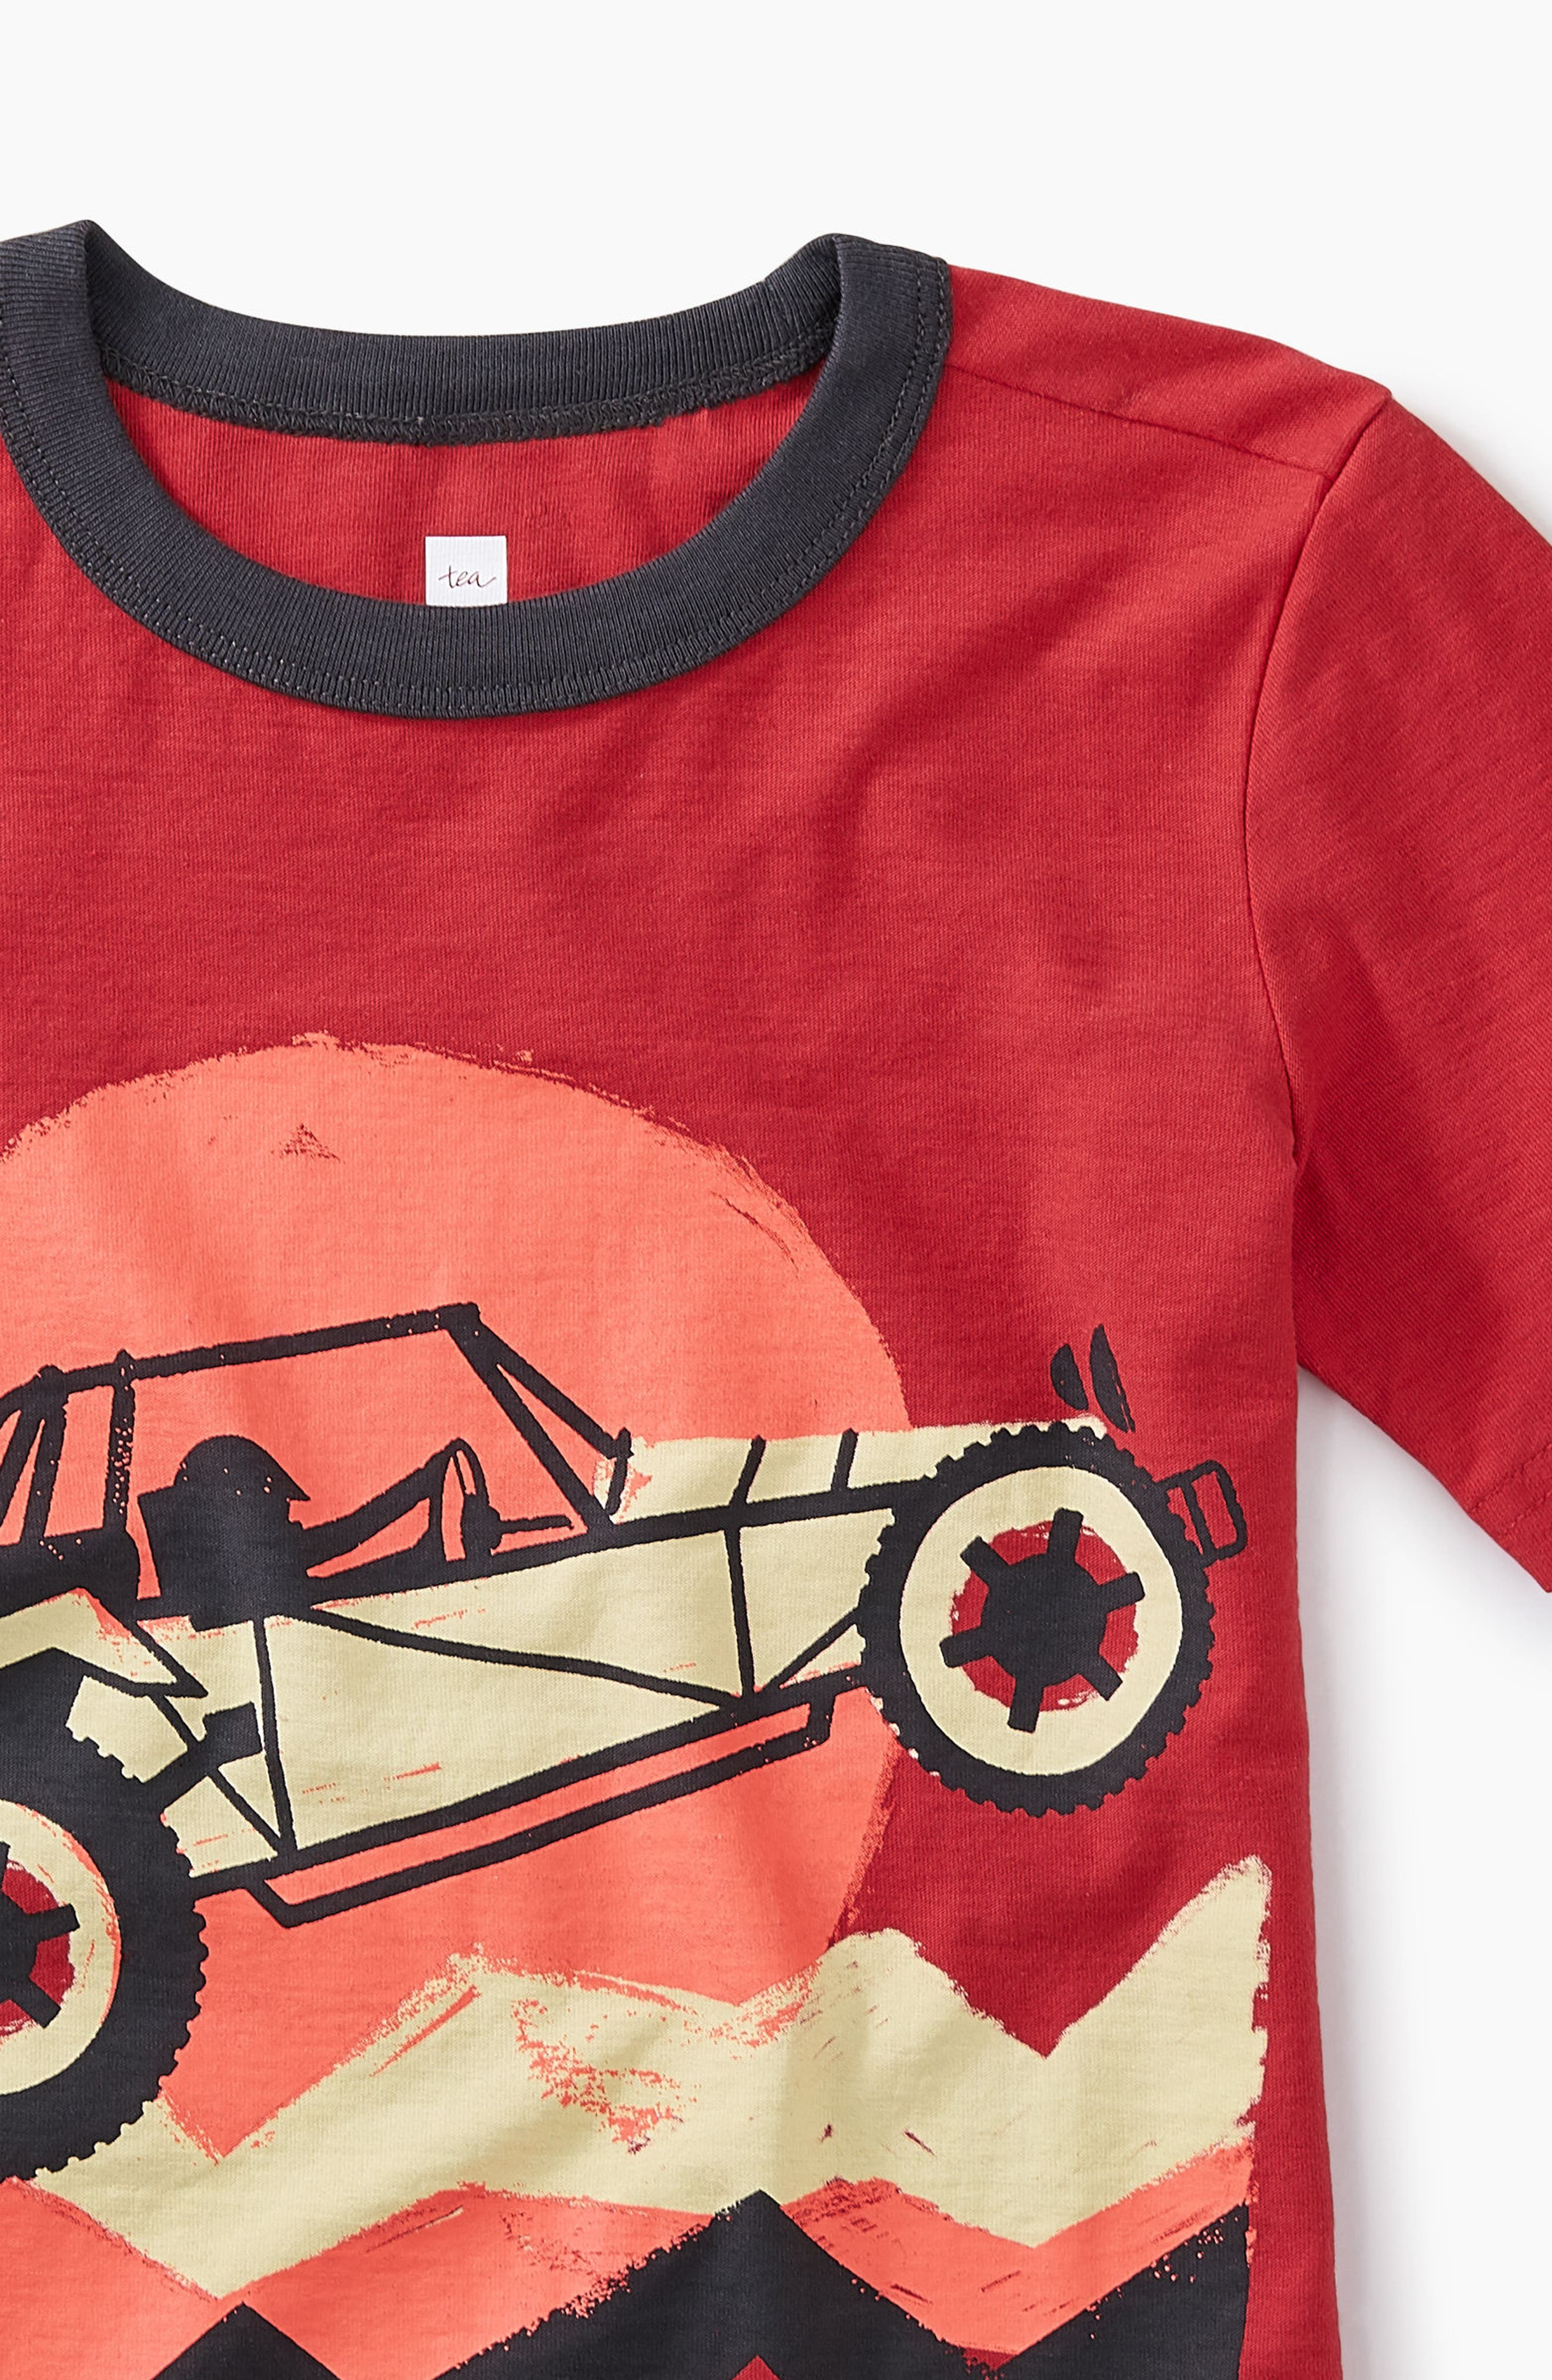 Dune Buggy Graphic T-Shirt,                             Alternate thumbnail 2, color,                             Cayenne